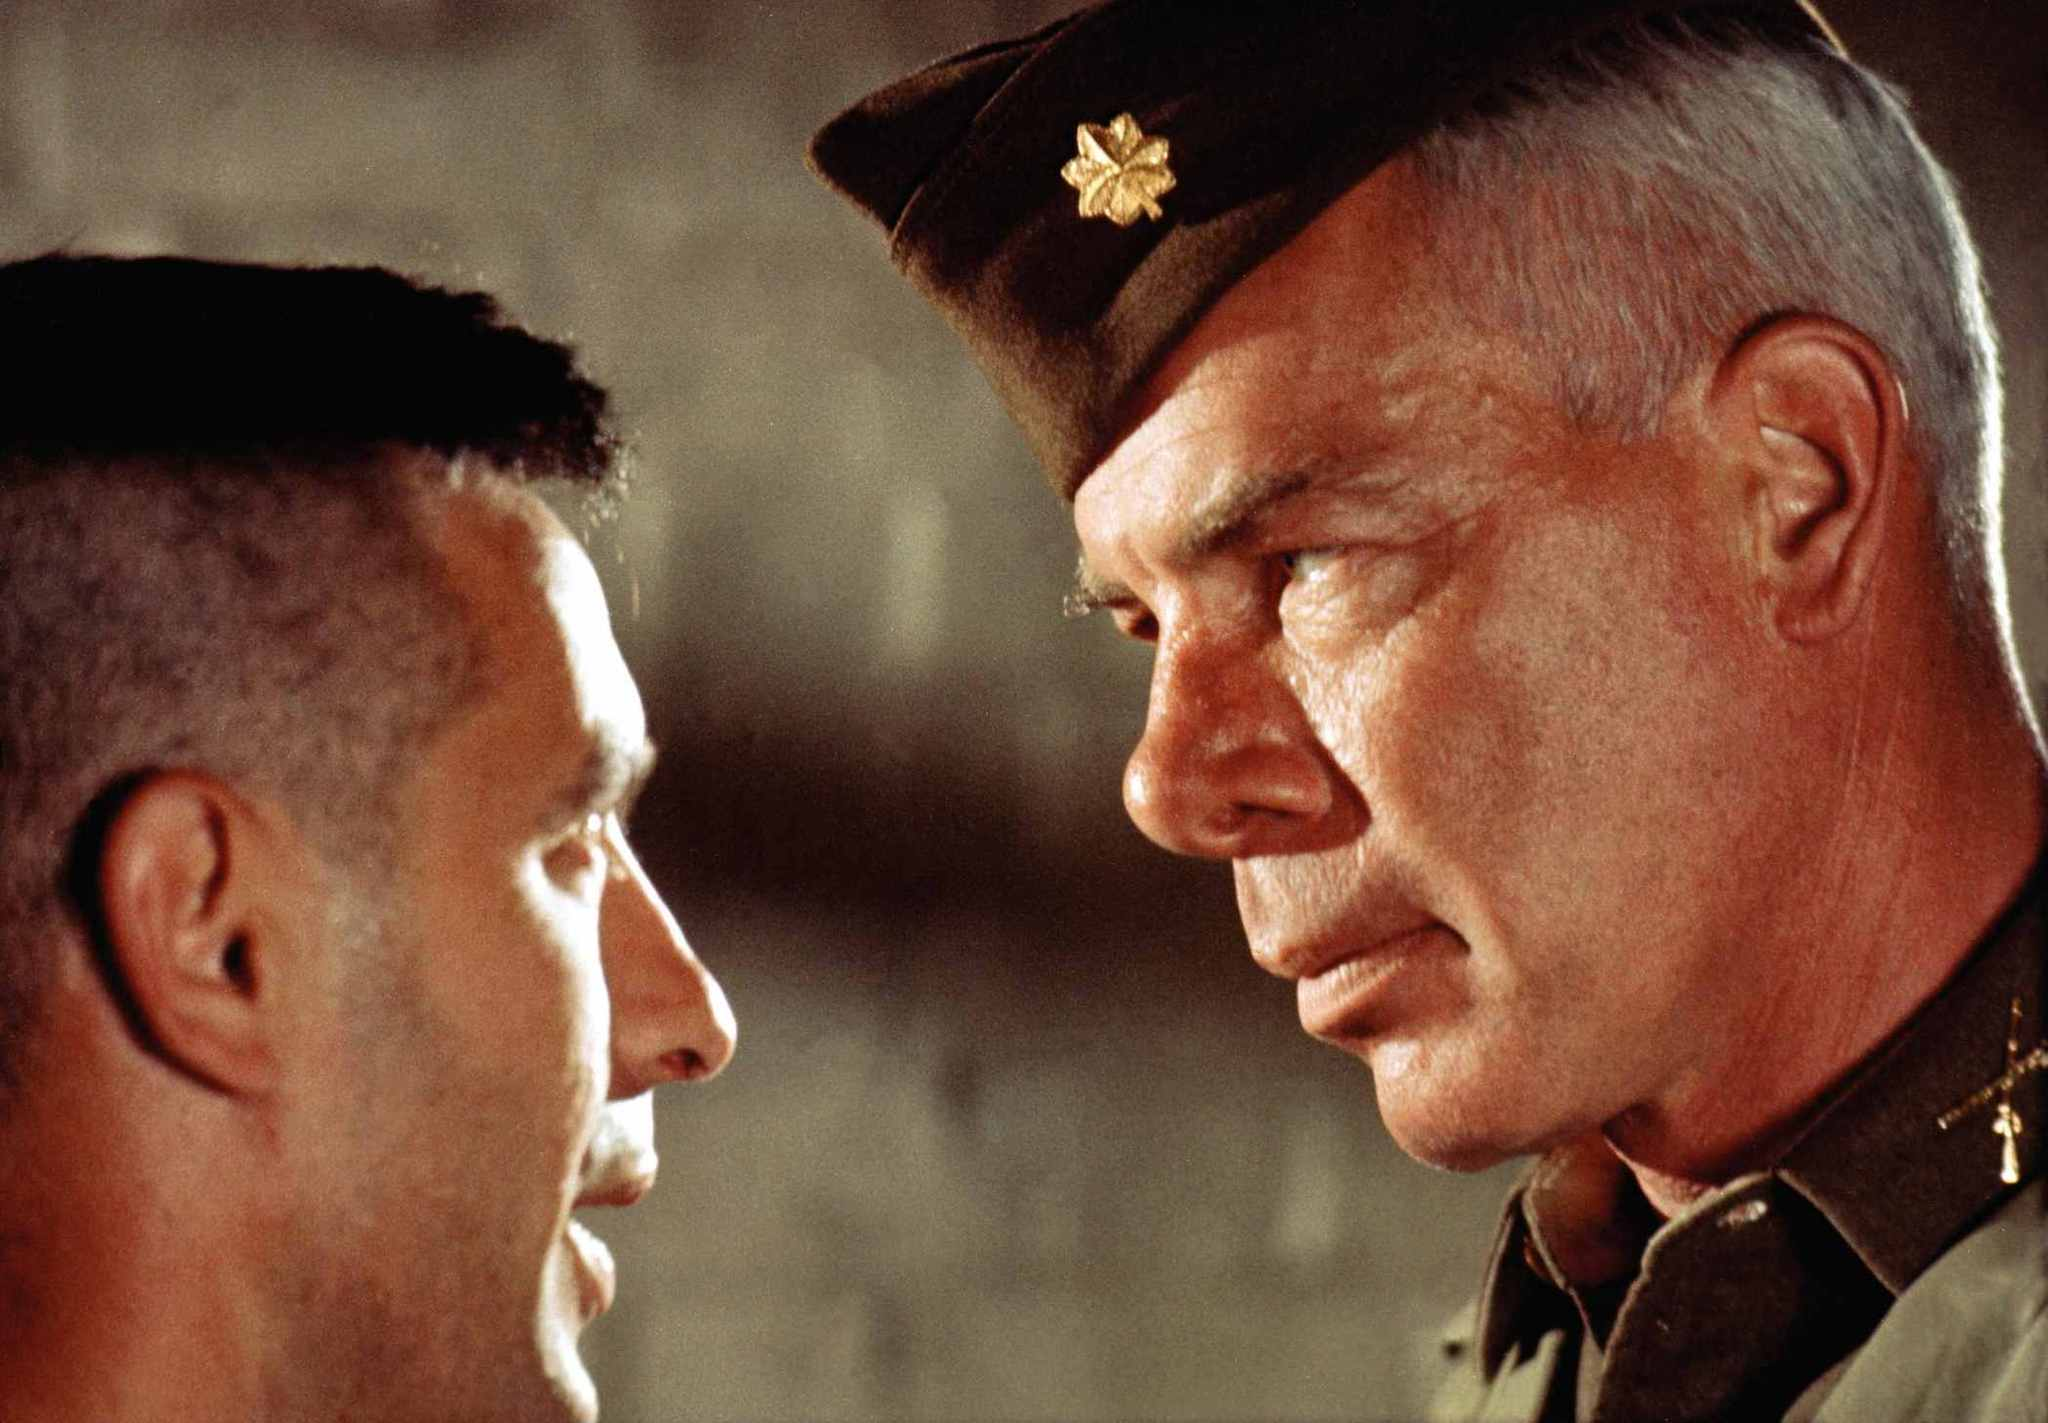 John Cassavetes and Lee Marvin in The Dirty Dozen (1967)